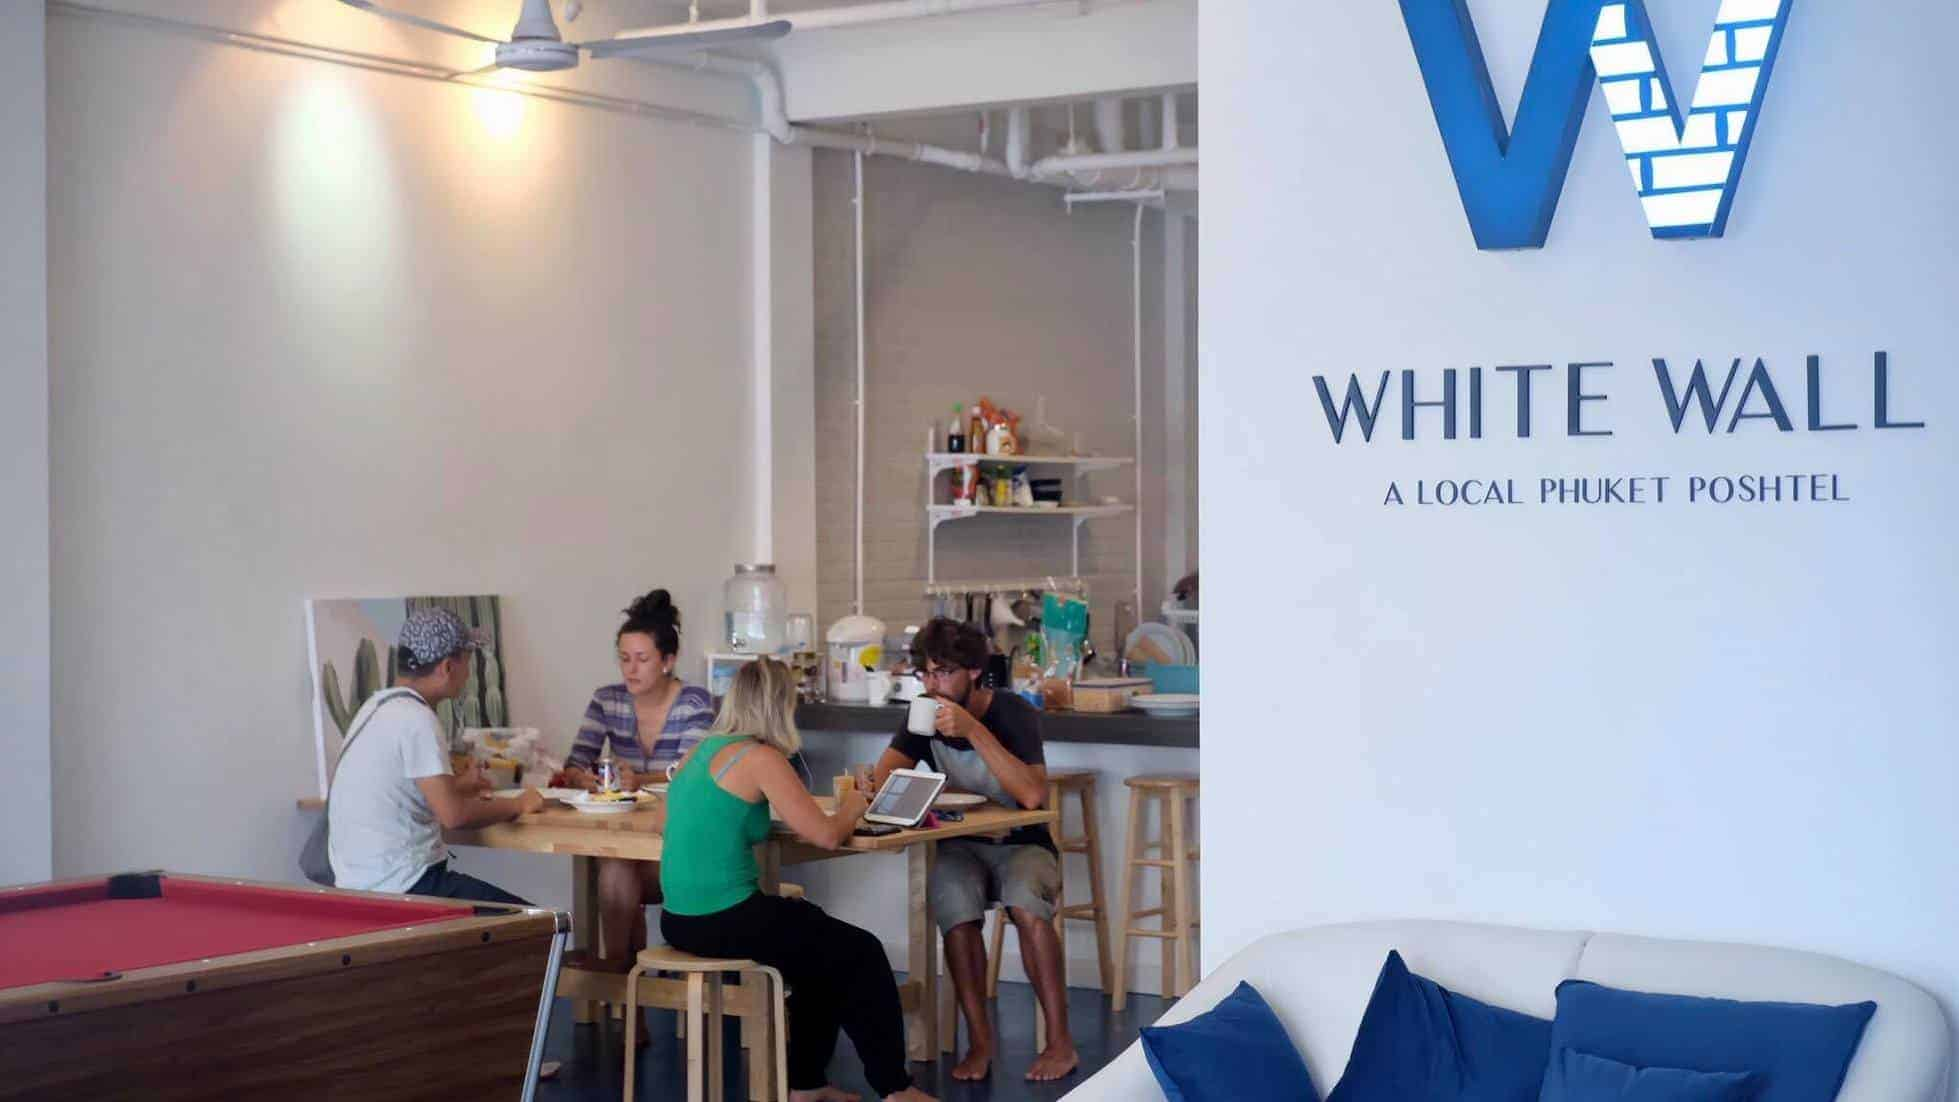 White Wall Poshtel, Phuket, Thailand offers several fun activities to make your stay exciting